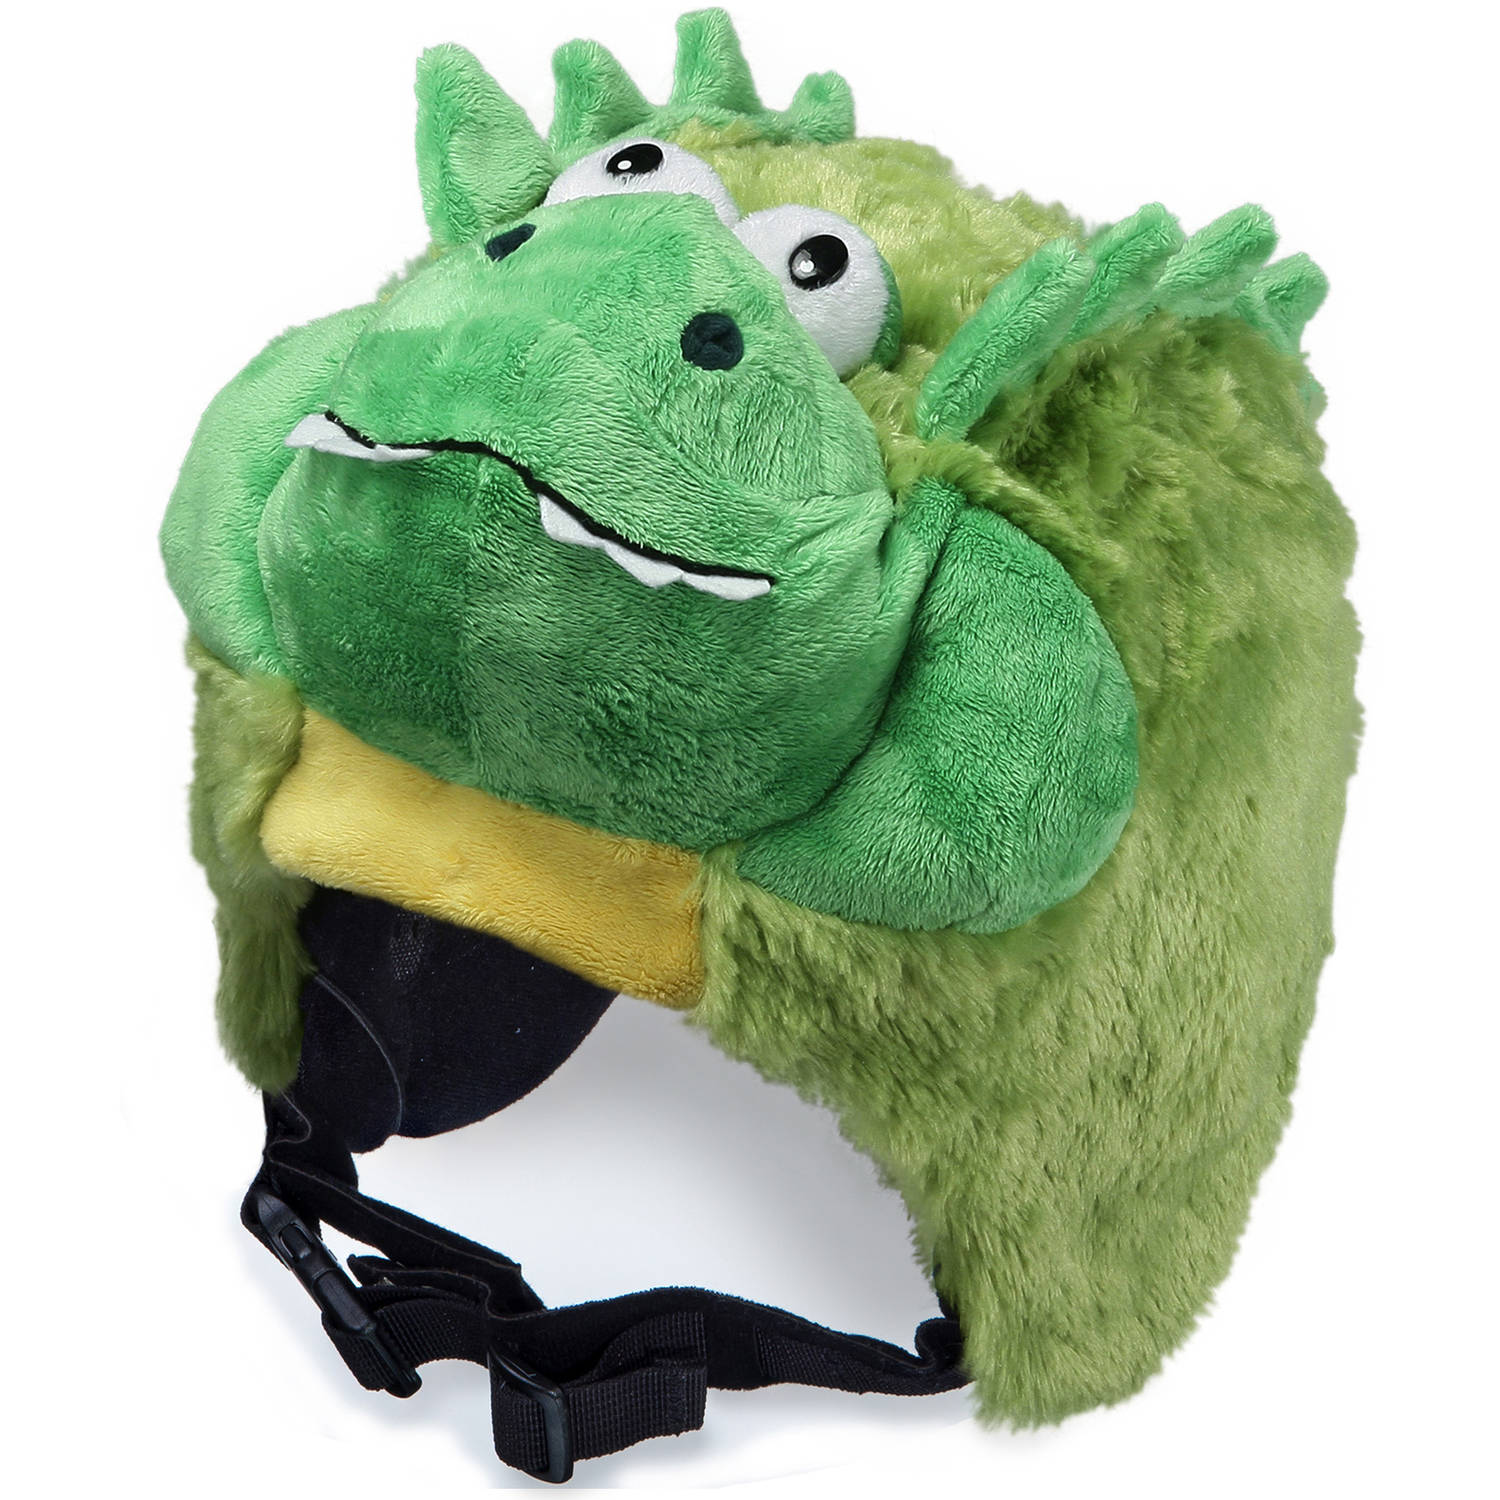 crazeeHeads Pickles the Alligator Plush Helmet Cover by crazeeHeads